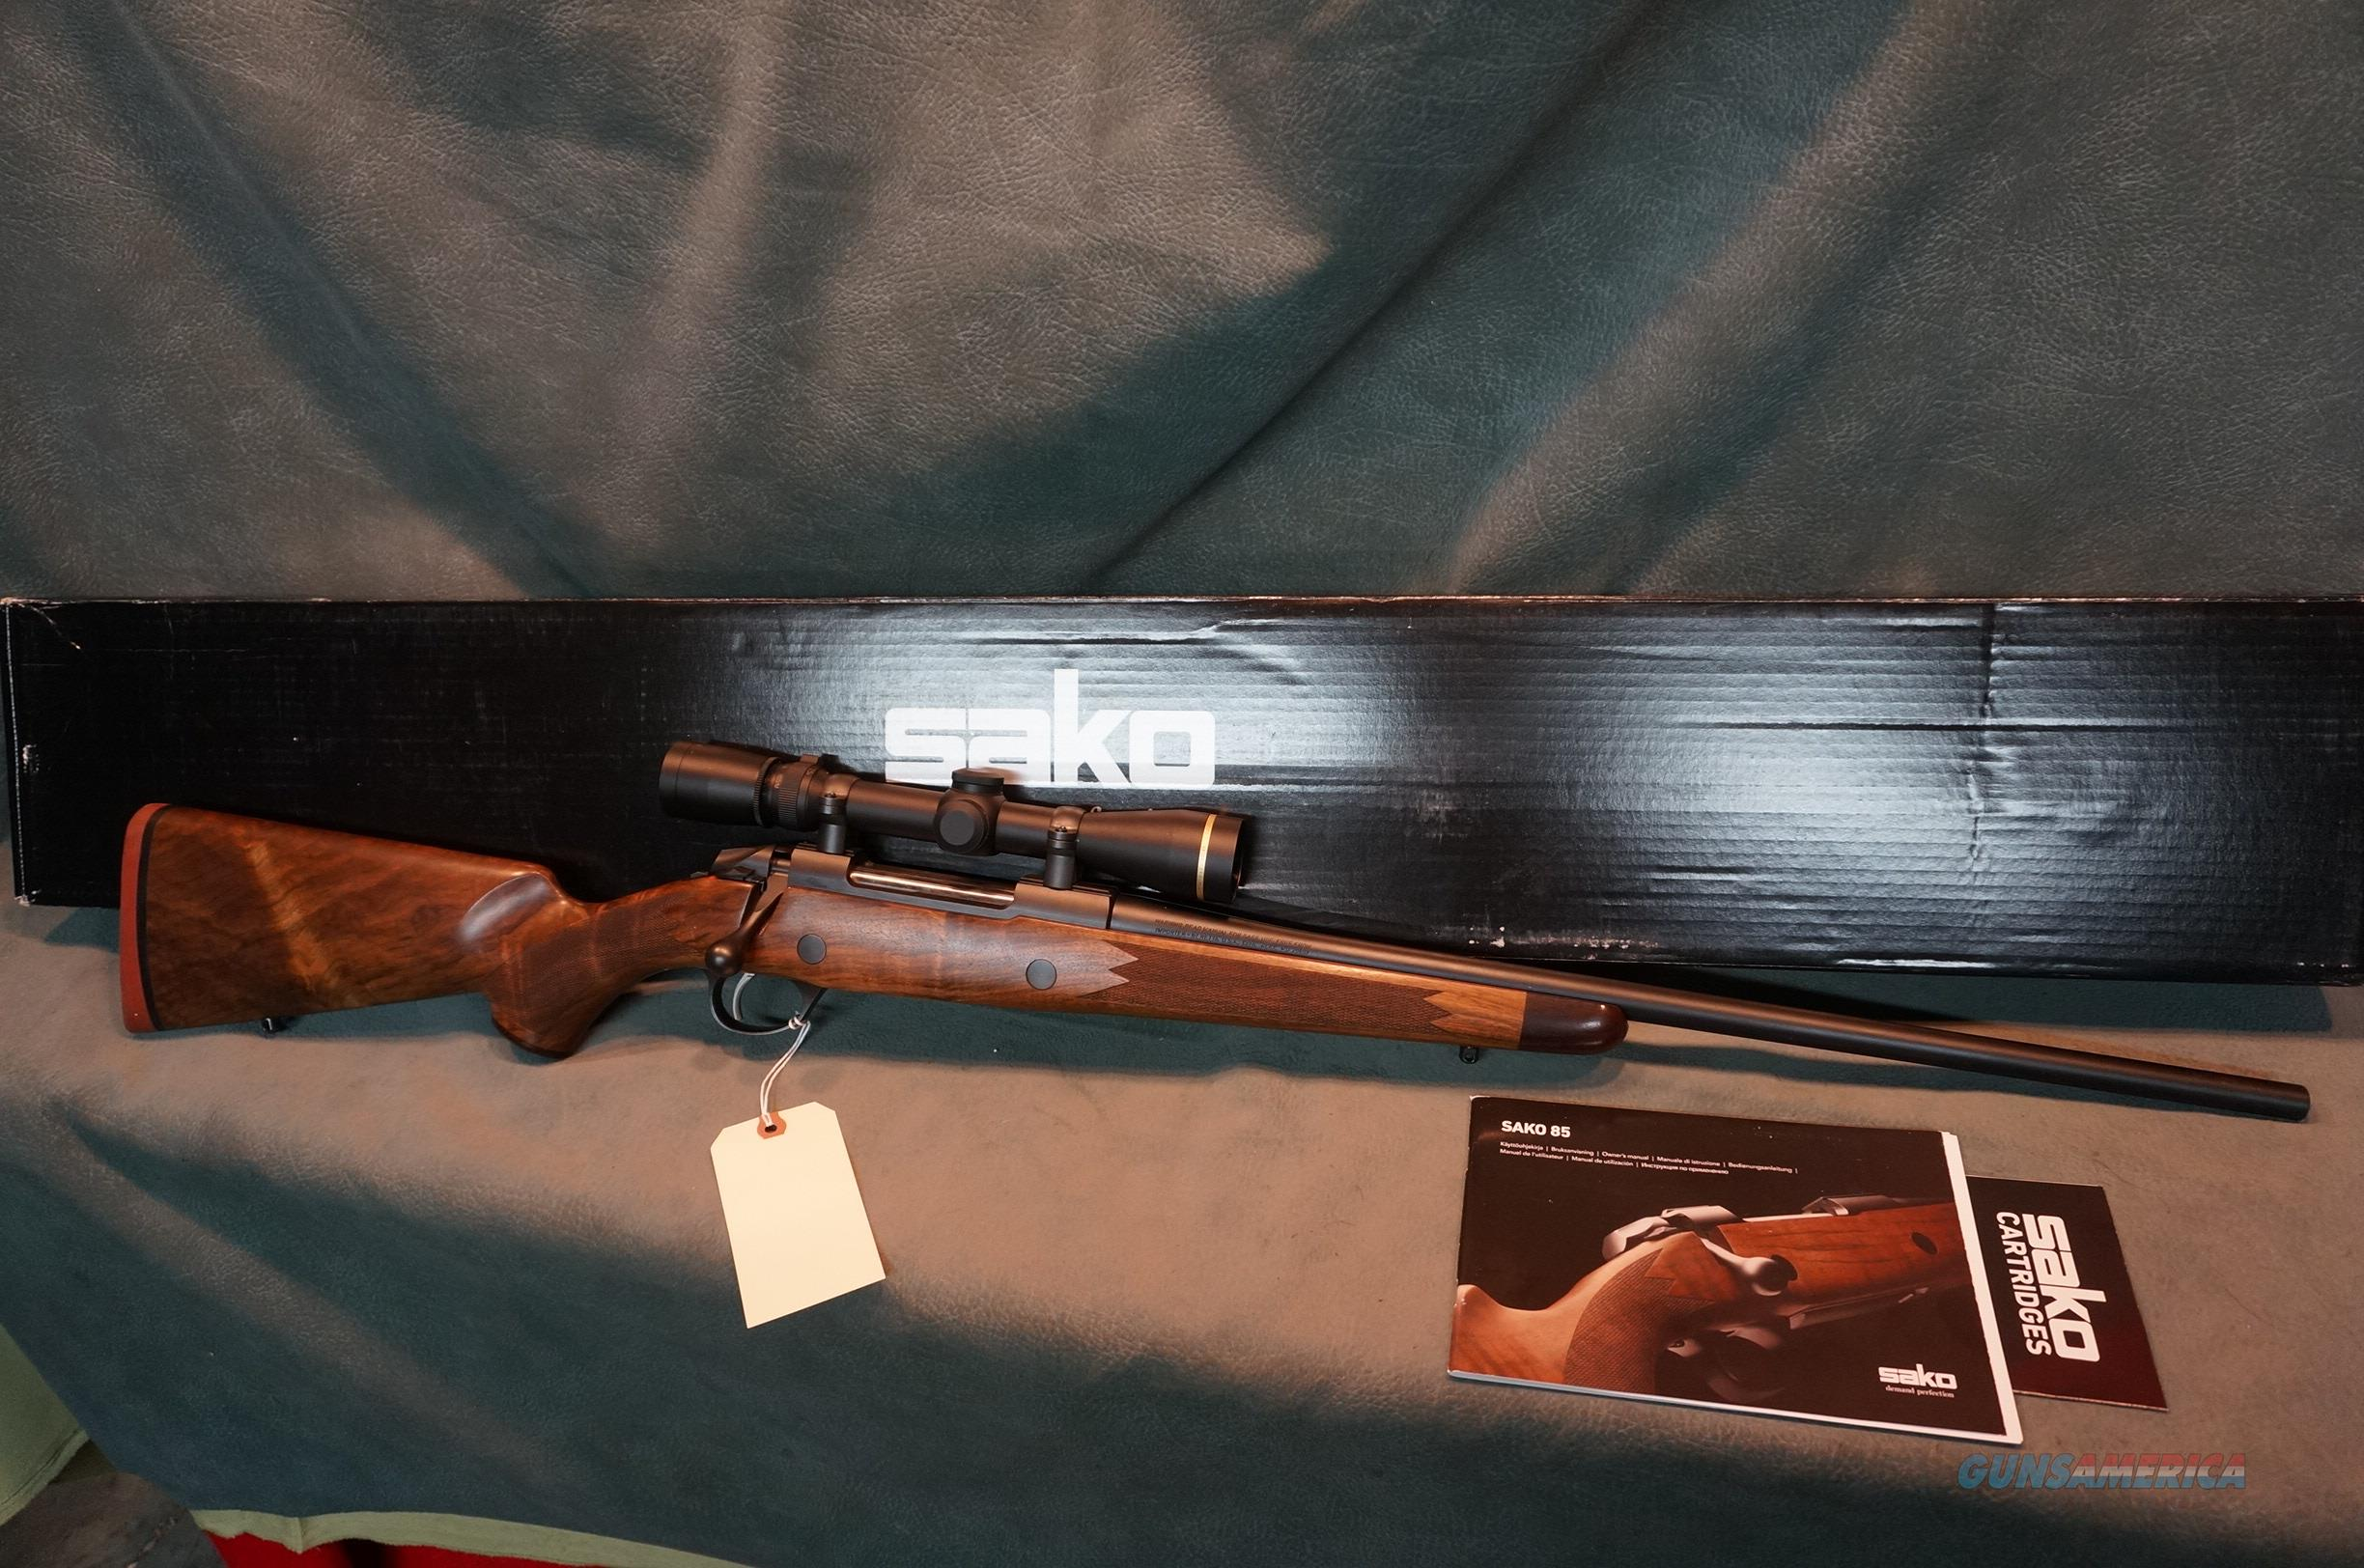 Sako 85M Classic 25-06 w/Leupold scope LNIB  Guns > Rifles > Sako Rifles > M85 Series